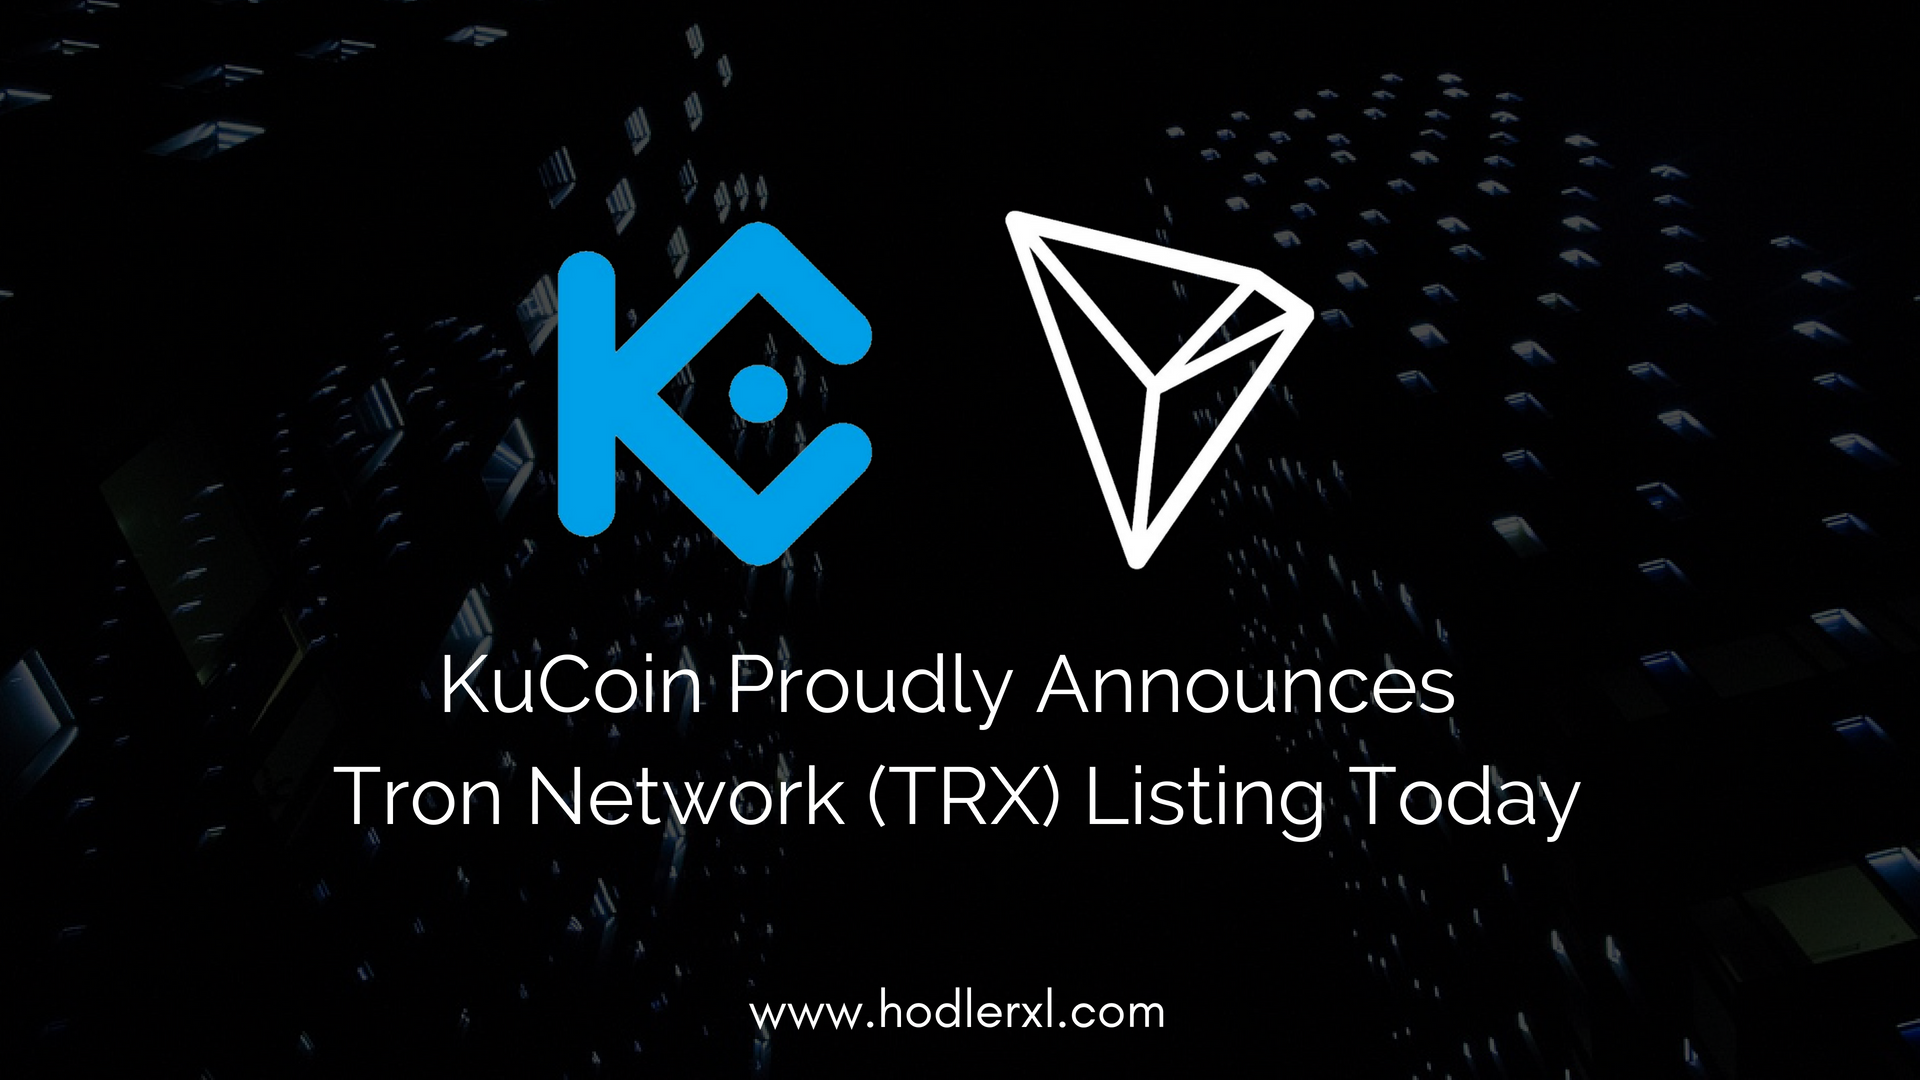 KUCOIN PROUDLY ANNOUNCES TRON NETWORK (TRX) LISTING TODAY